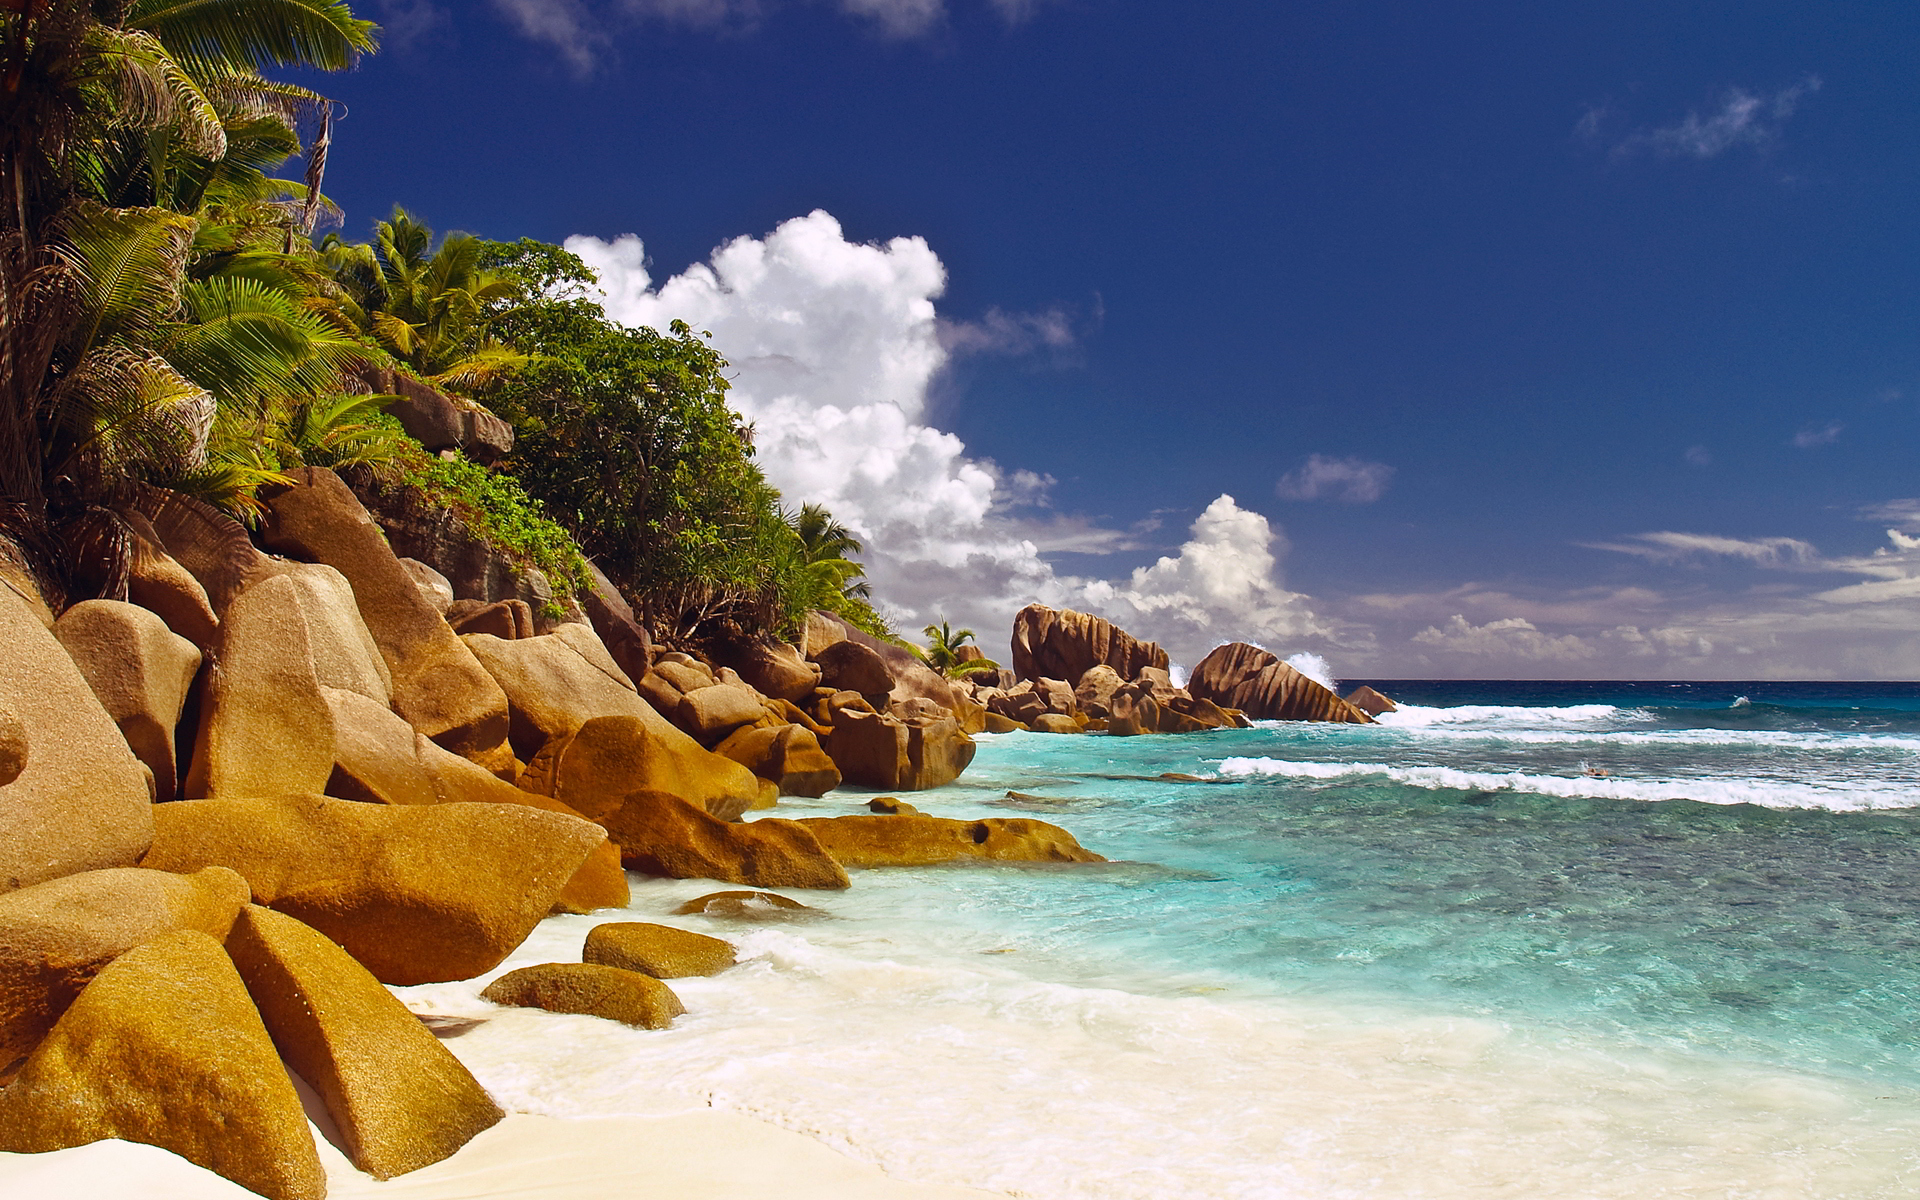 Beach Pictures Hd Wallpapers: Beach Background - HD Desktop Wallpapers